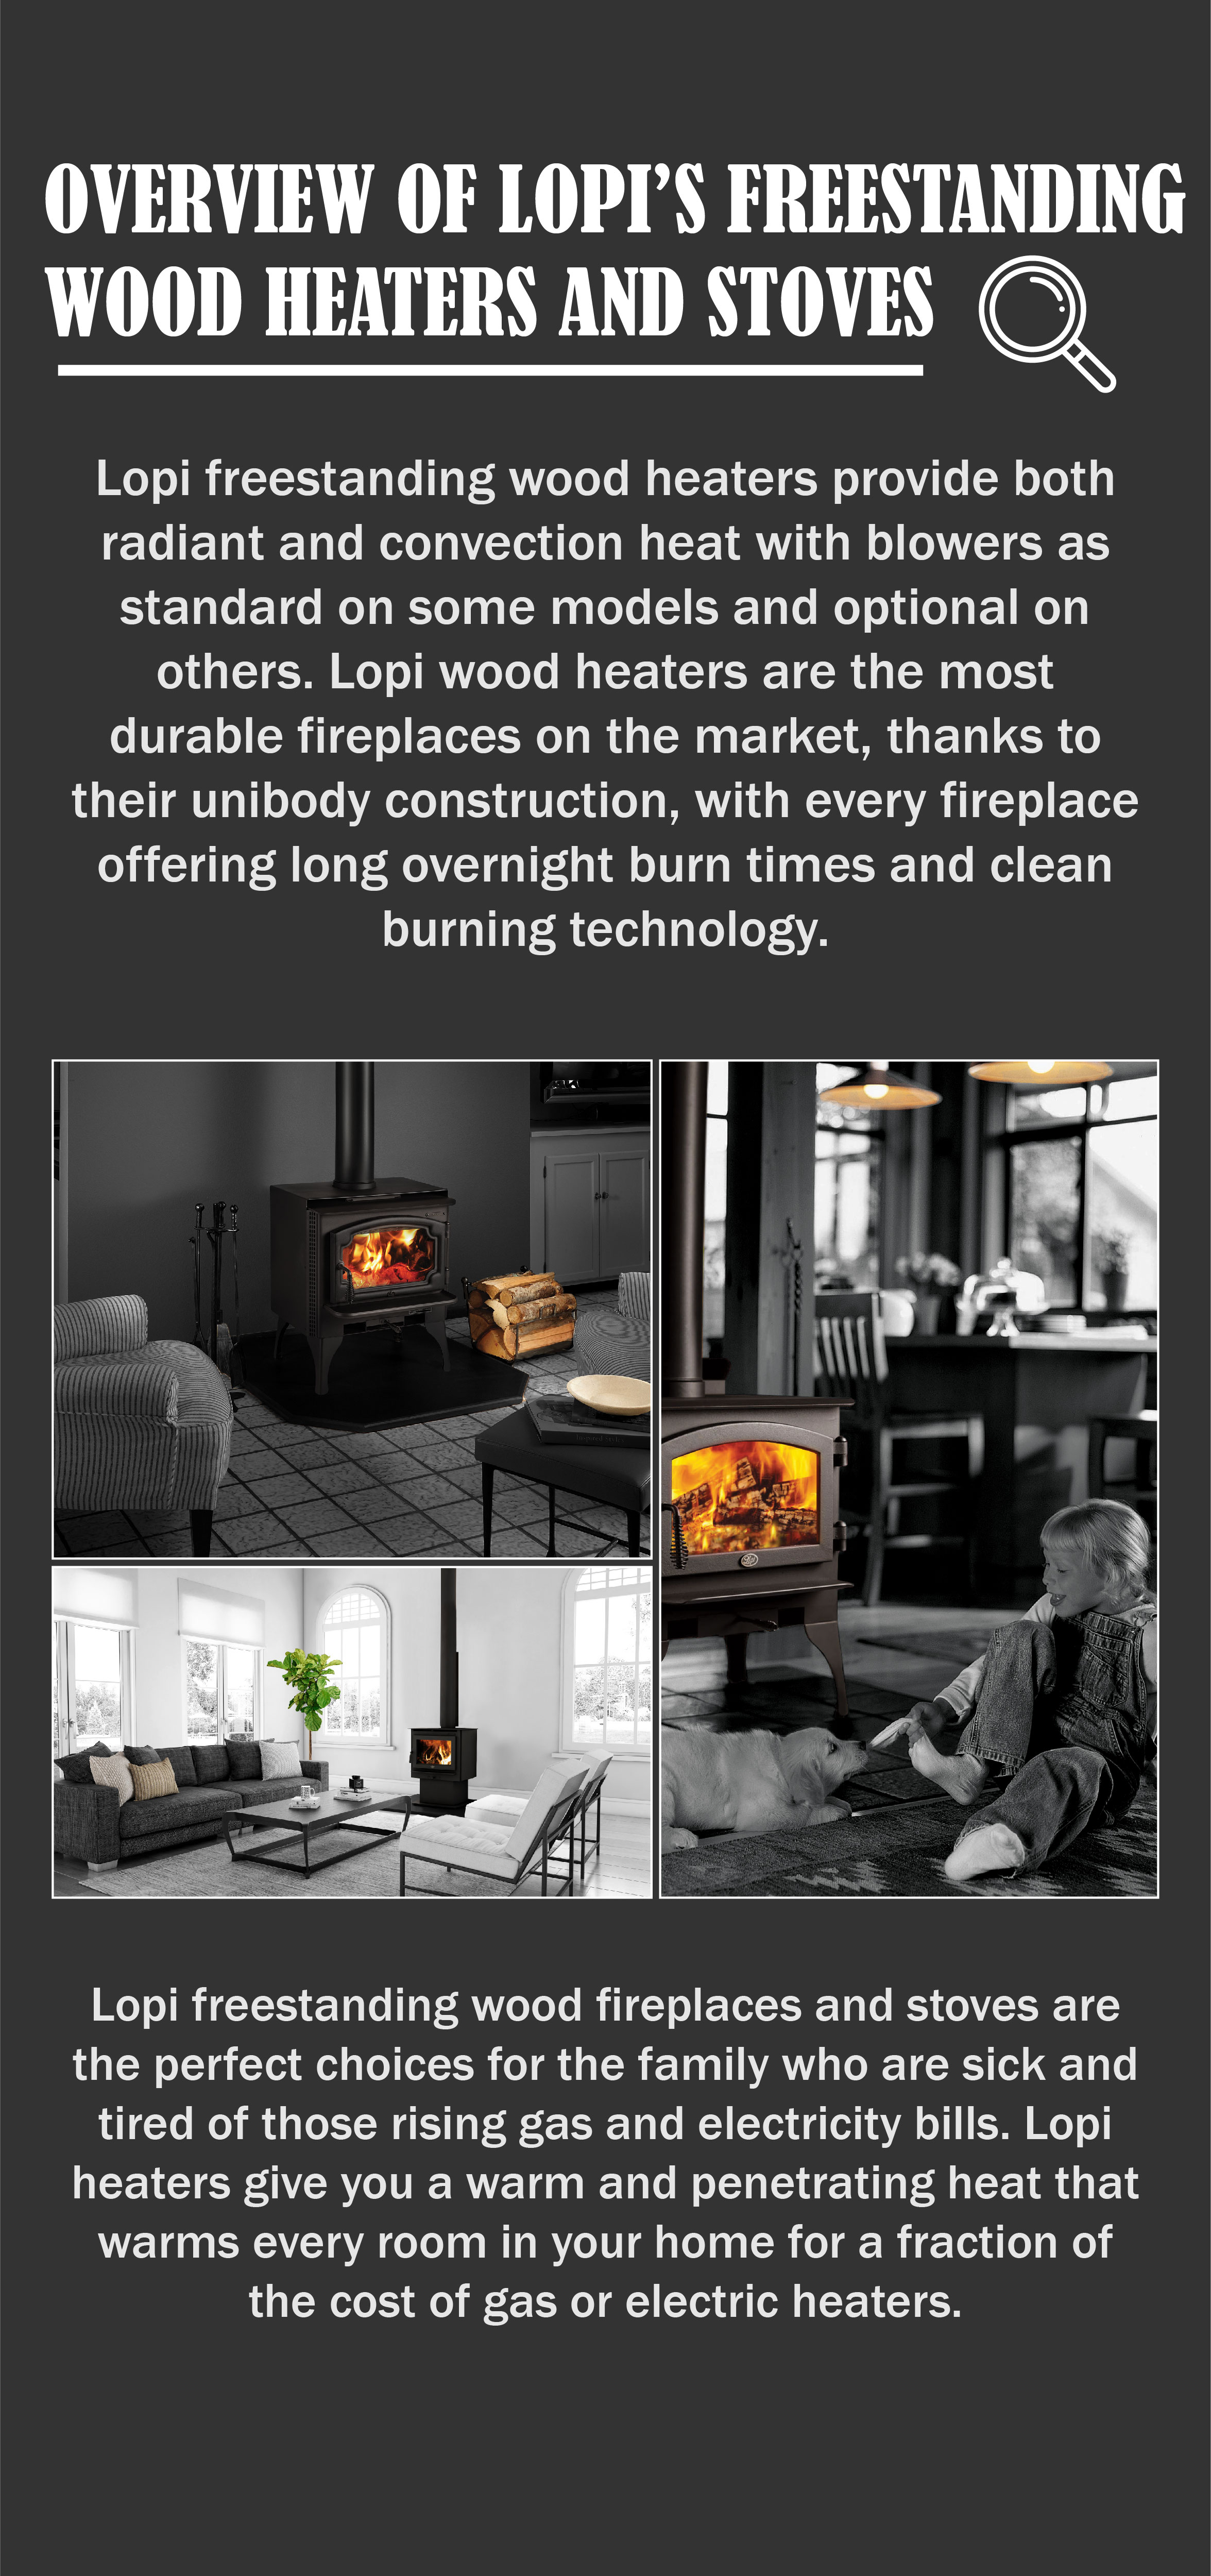 Review of Lopi's freestanding wood heaters and Stoves